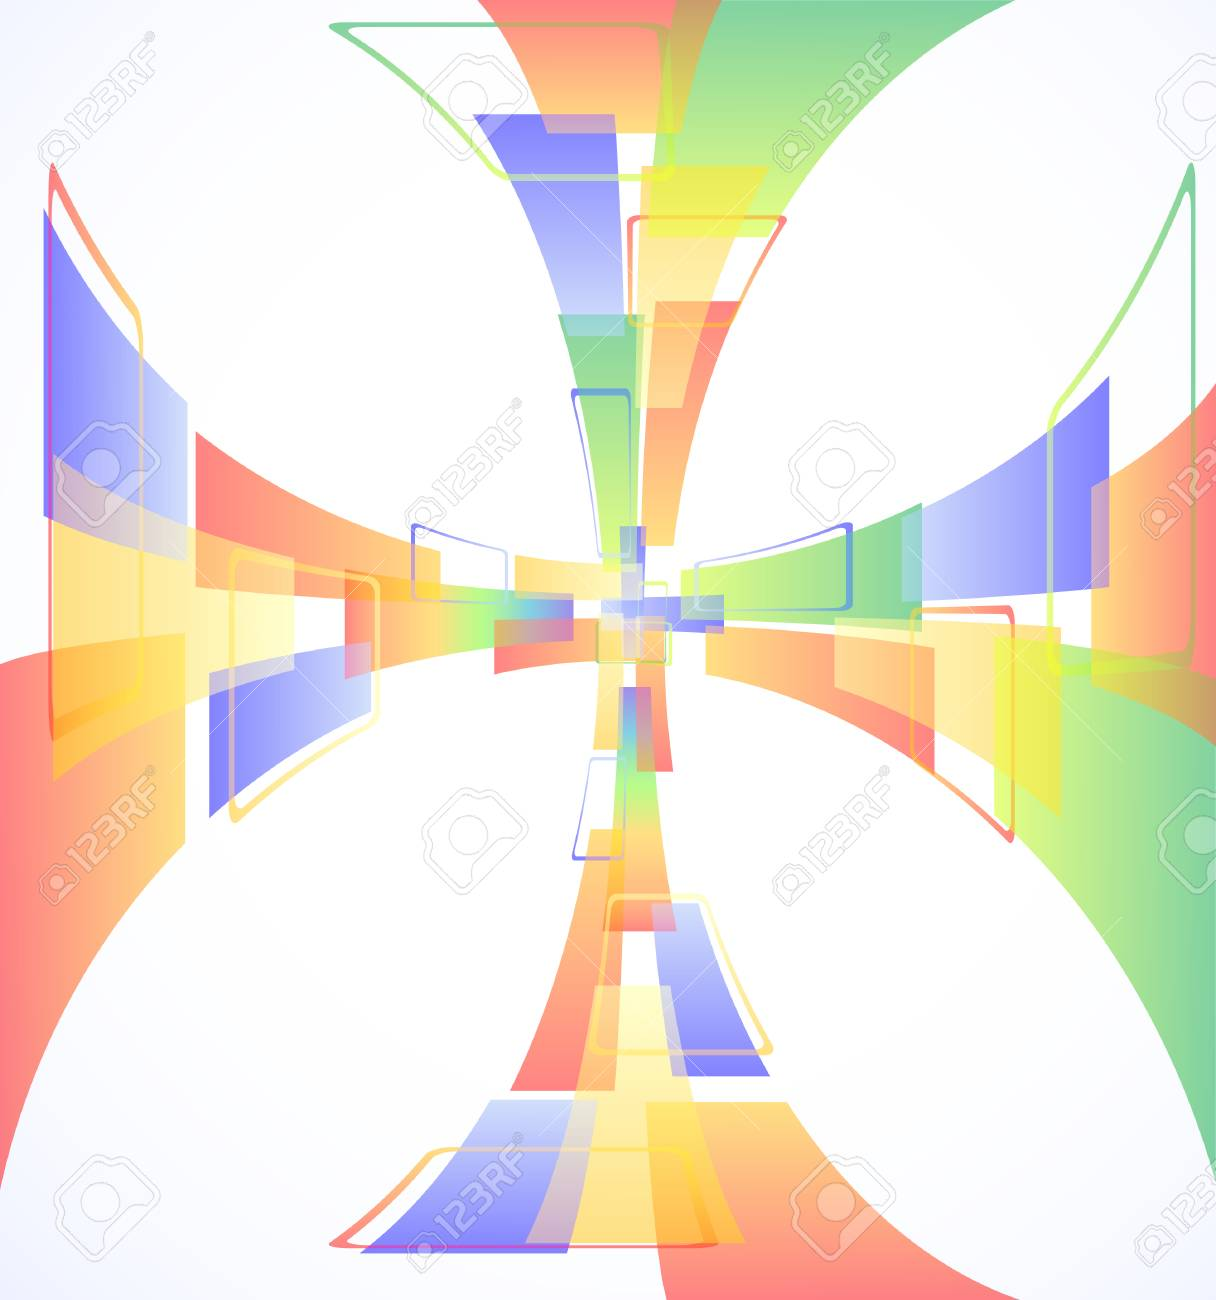 Abstract colorful background illustration eps10 Stock Vector - 8315302